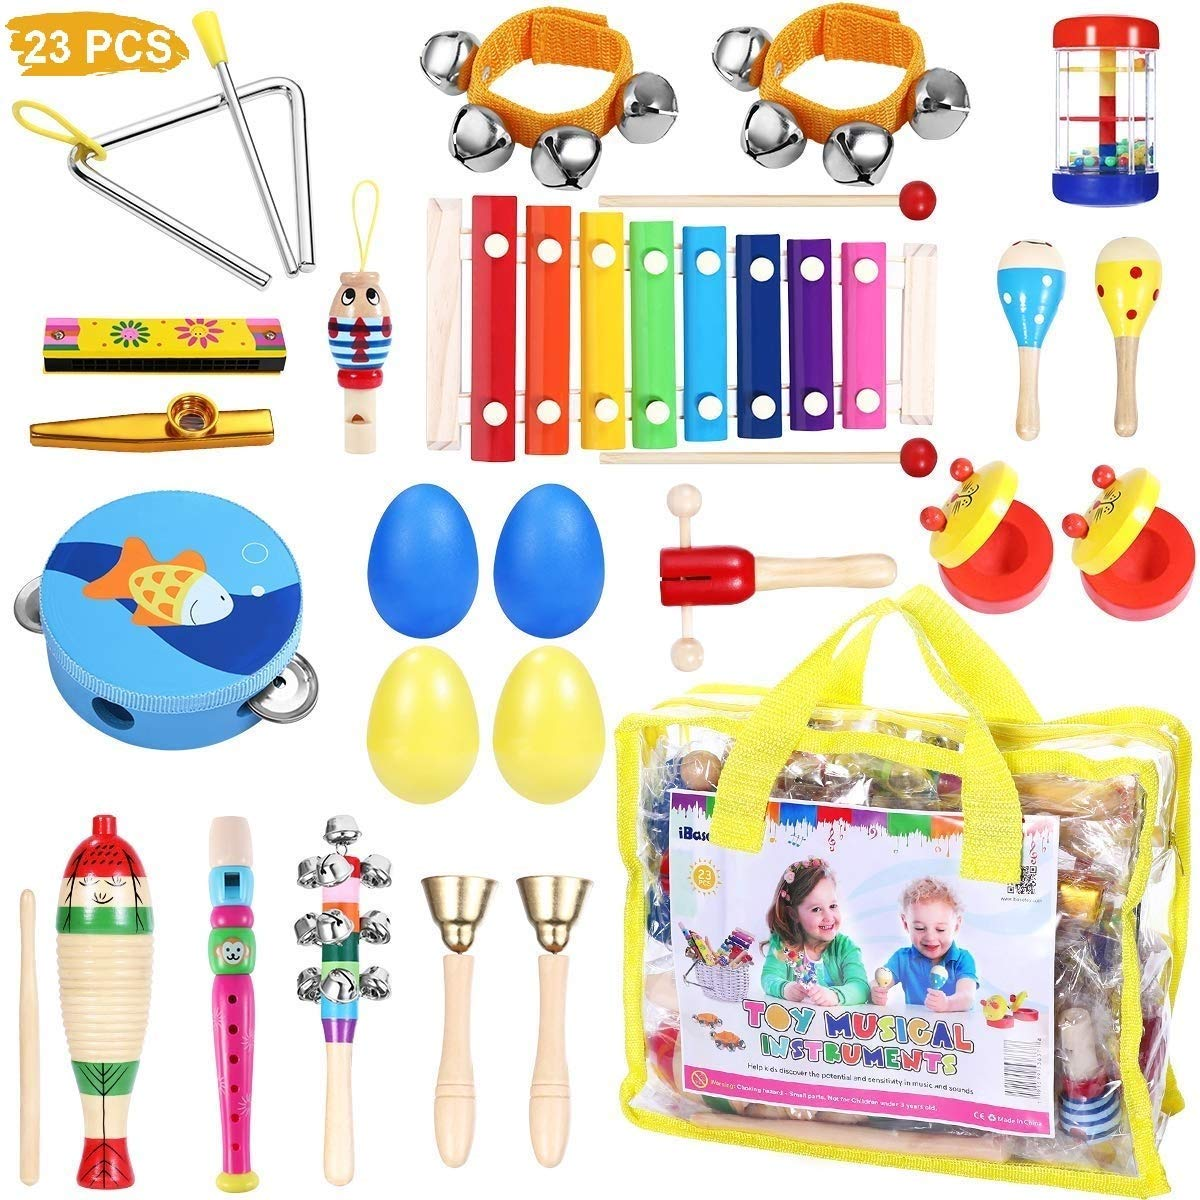 Toddler Musical Instruments - iBaseToy 23Pcs 16Types Wooden Percussion Instruments Tambourine Xylophone Toys for Kids Preschool Education, Early Learning Musical Toys for Boys Girls with Storage bag by iBaseToy